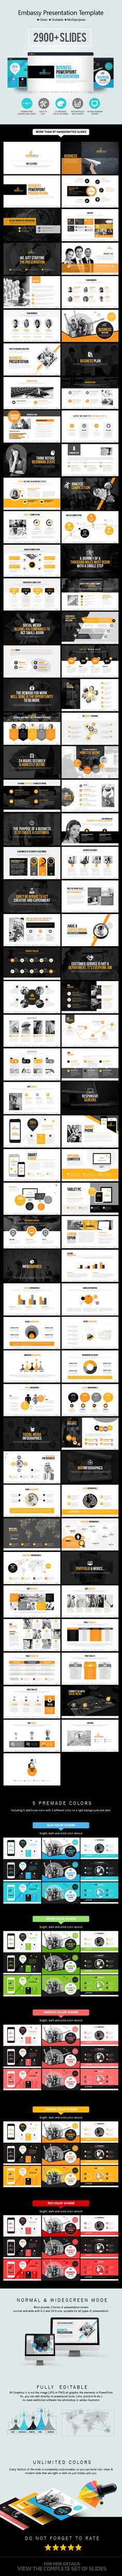 Embassy Powerpoint Presentation - Business Powerpoint Templates